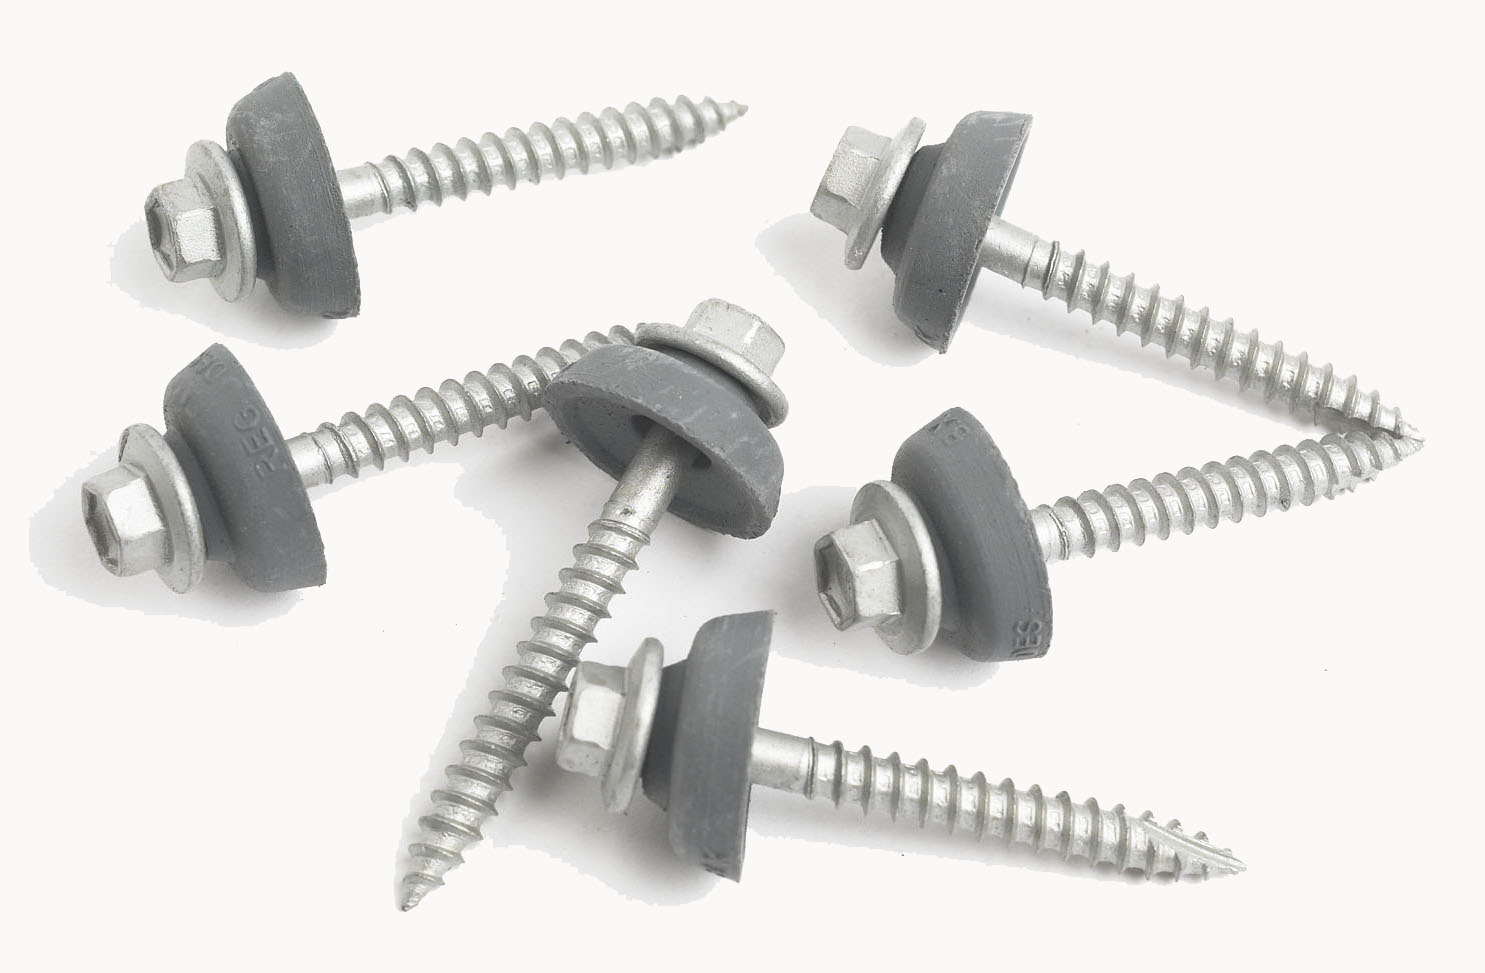 Metal Roofing screws